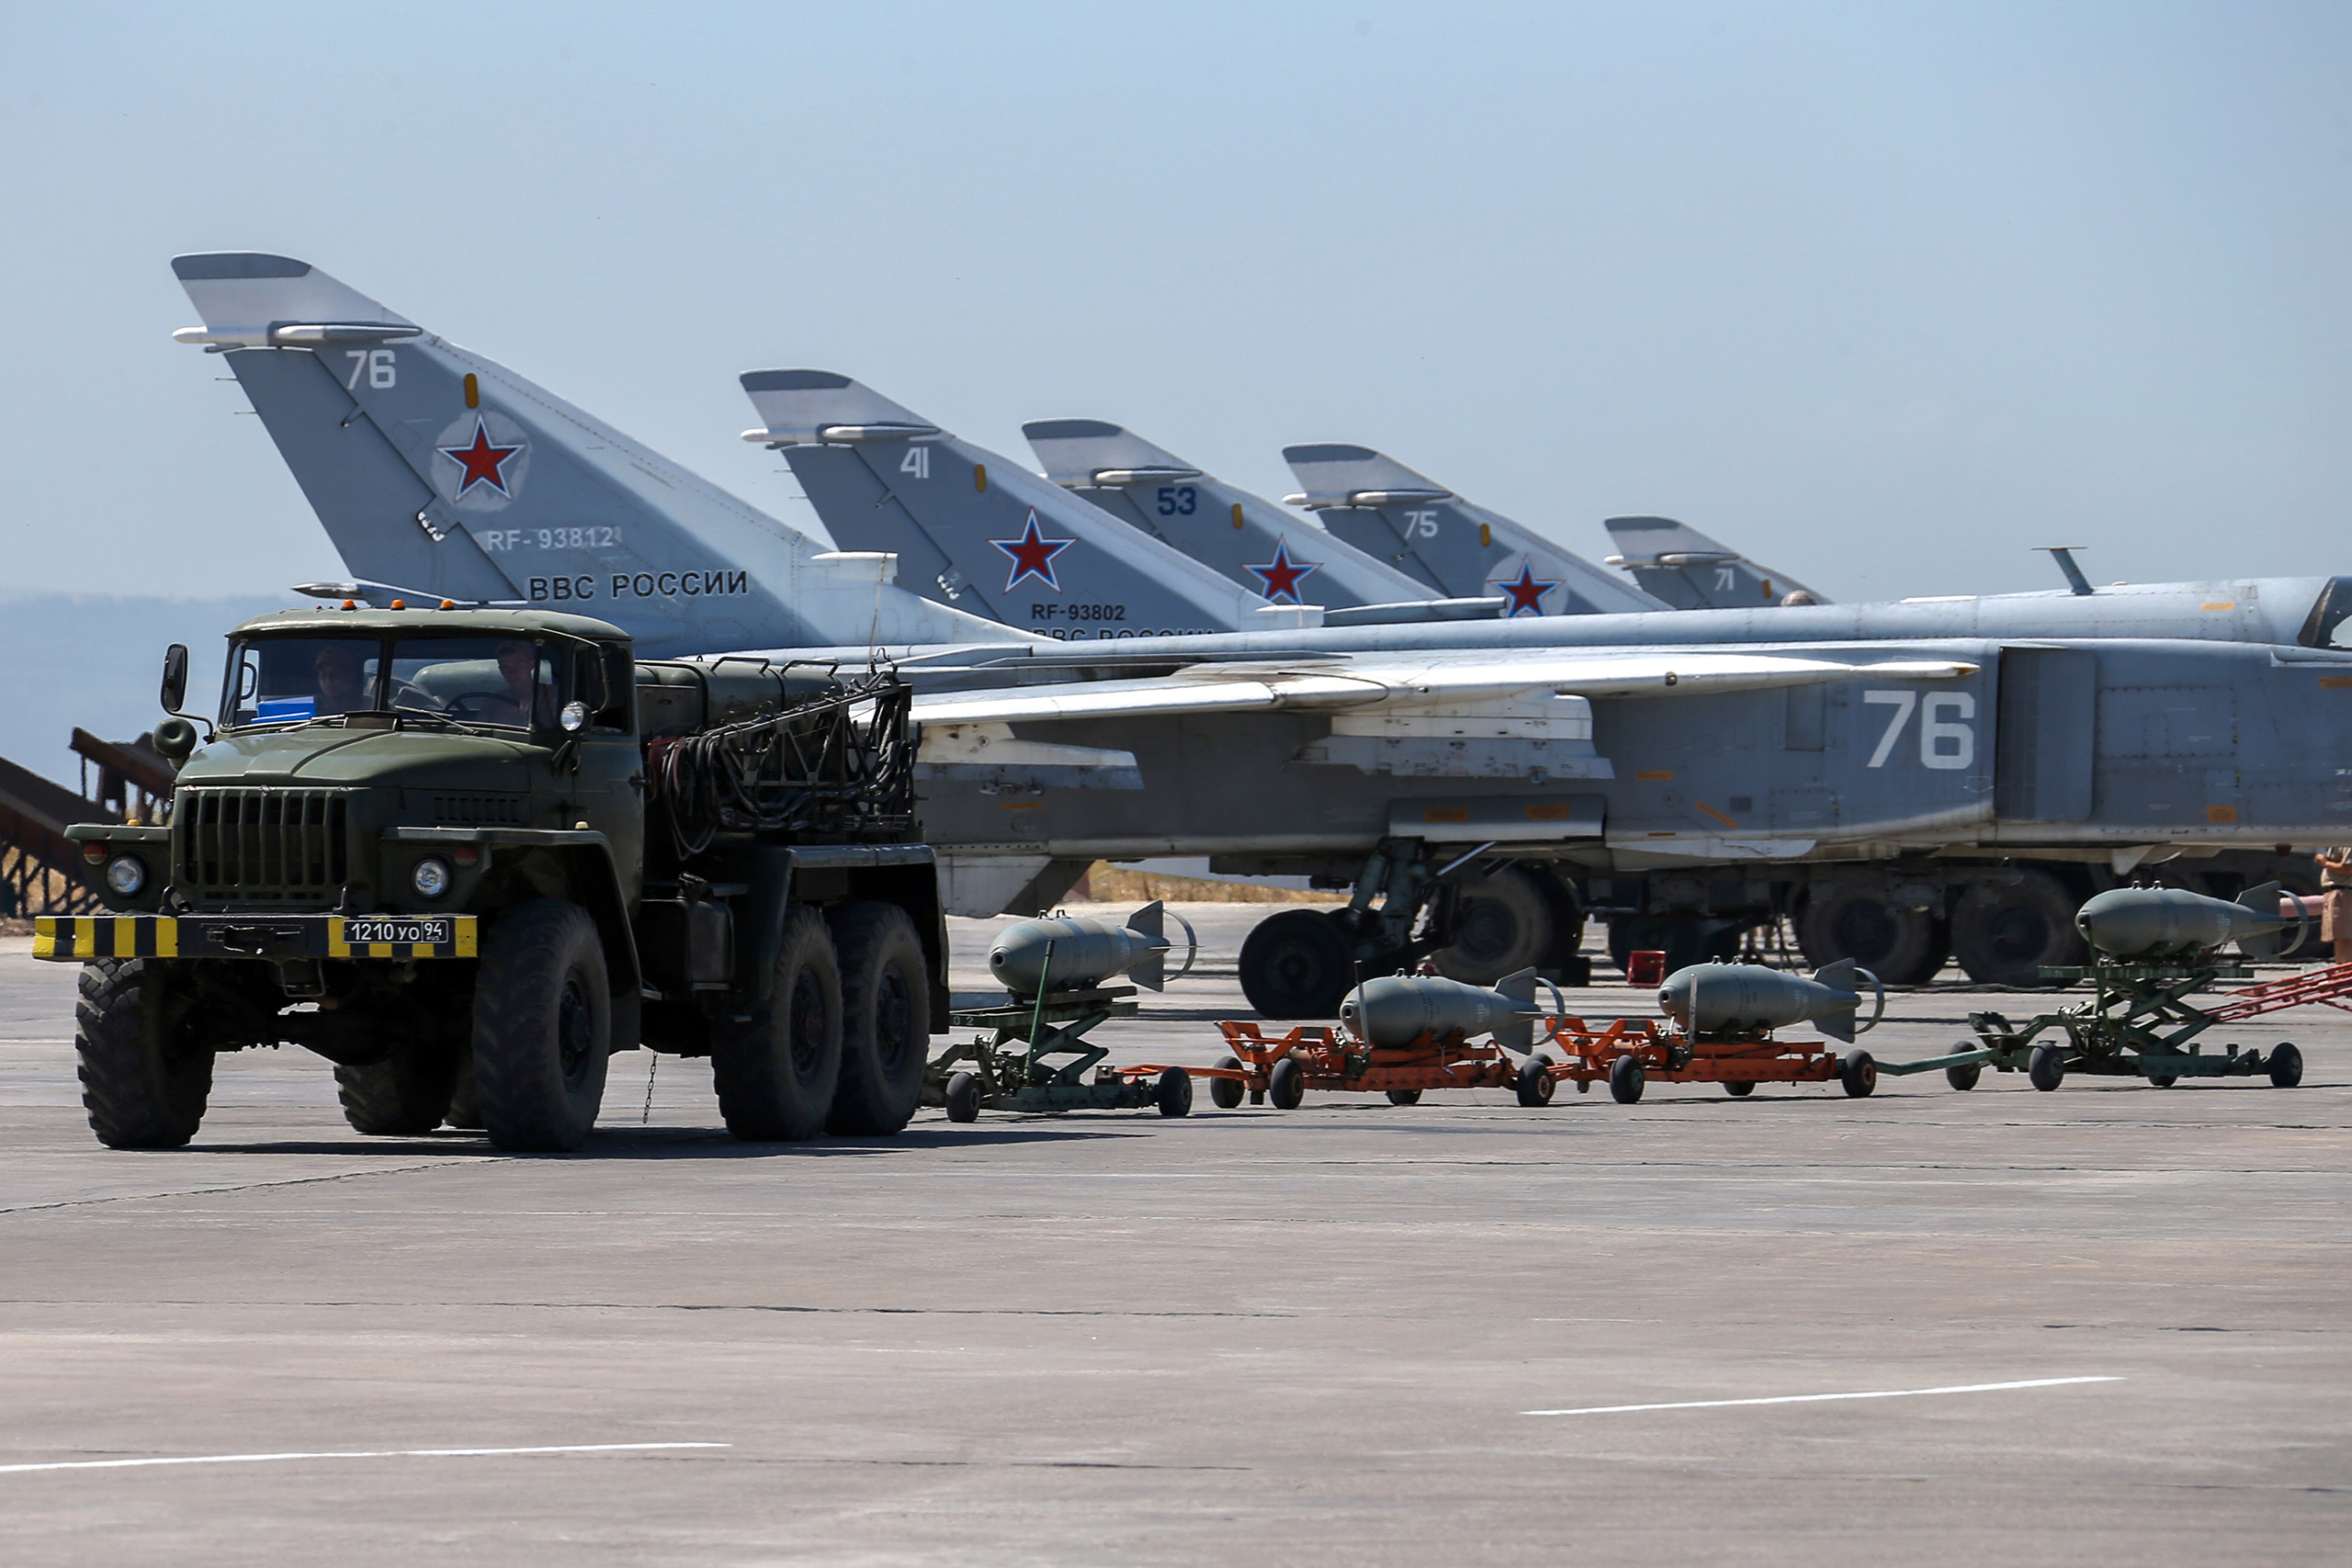 Russian fighter jets and bombers are parked at Hemeimeem air base in Syria on June 18, 2016.